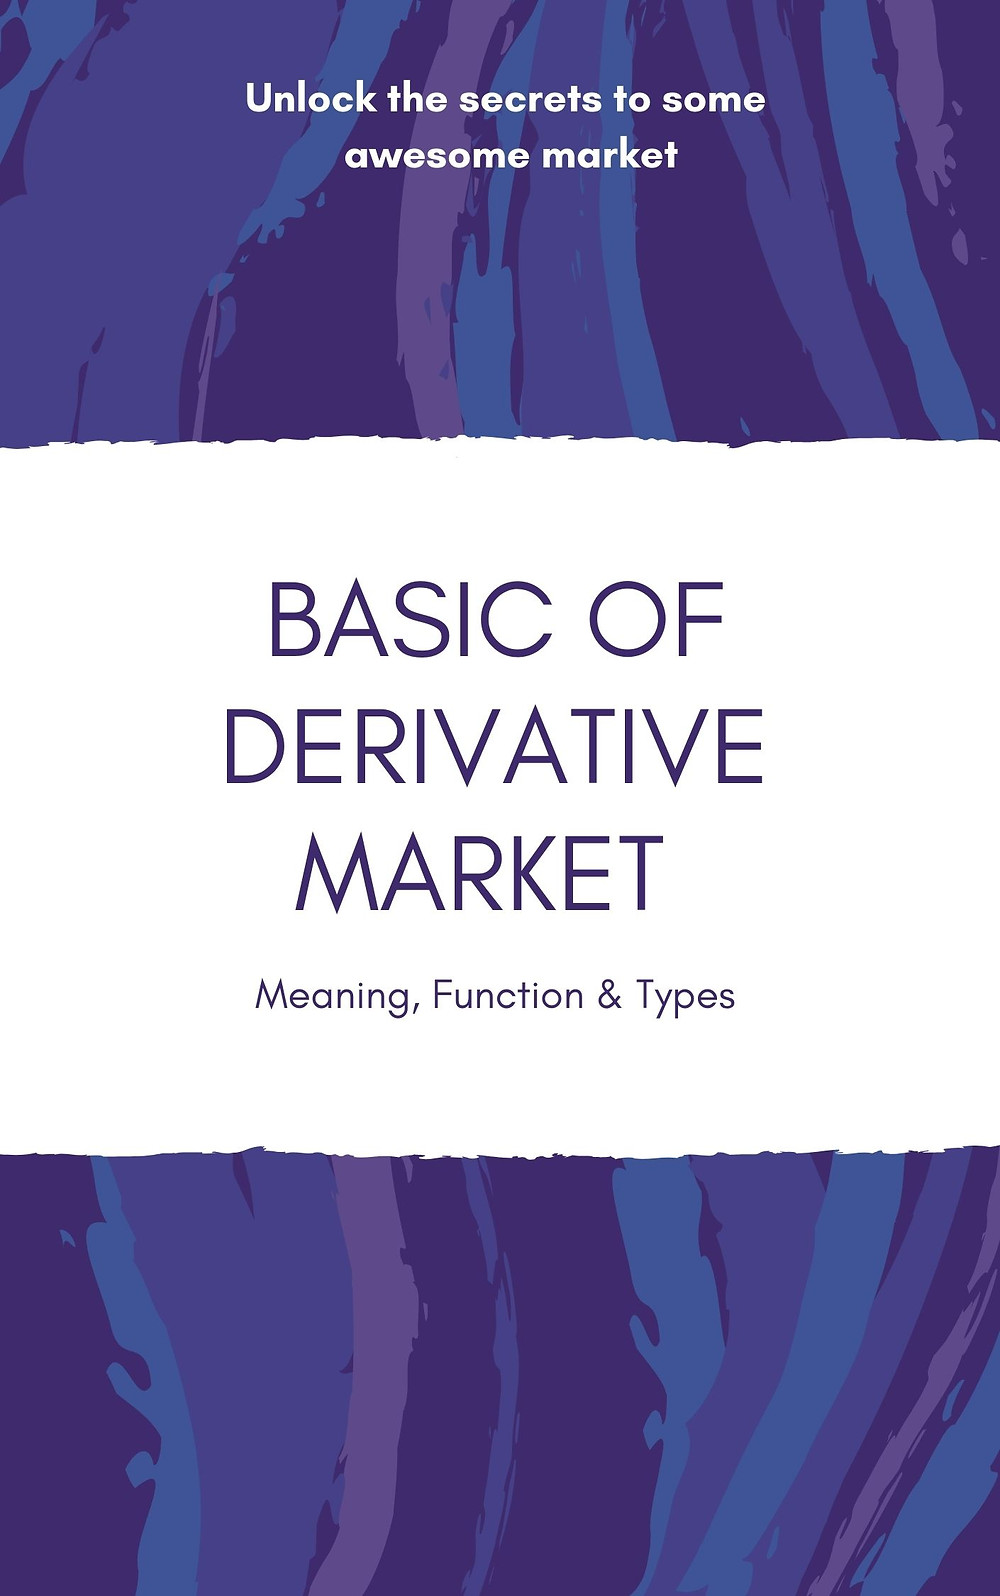 Meaning of derivative, function of derivative, and their types